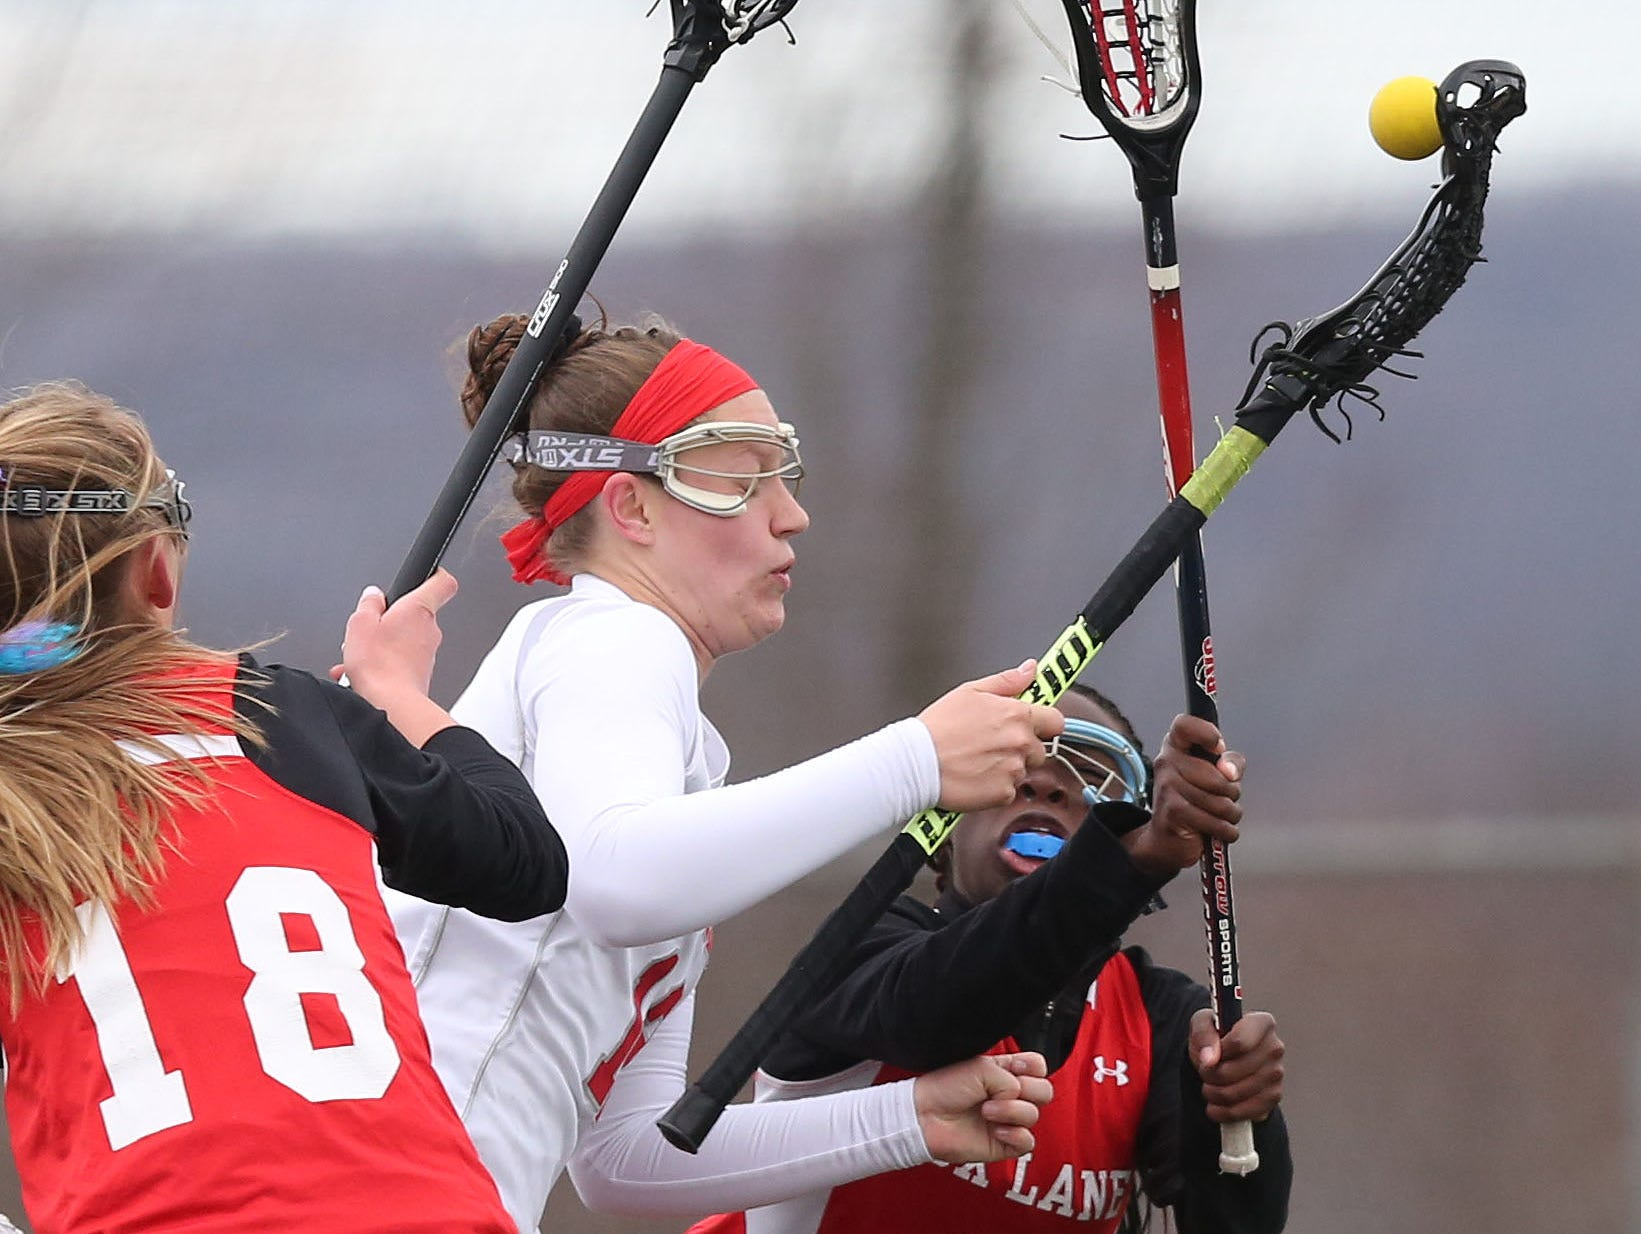 Somers' Livy Rosenzweig (12) drives to the goal in front of Fox Lane's Alison Moky (2) during a girls lacrosse game at Somers High School April 8, 2016. Somers won the game 15-12.